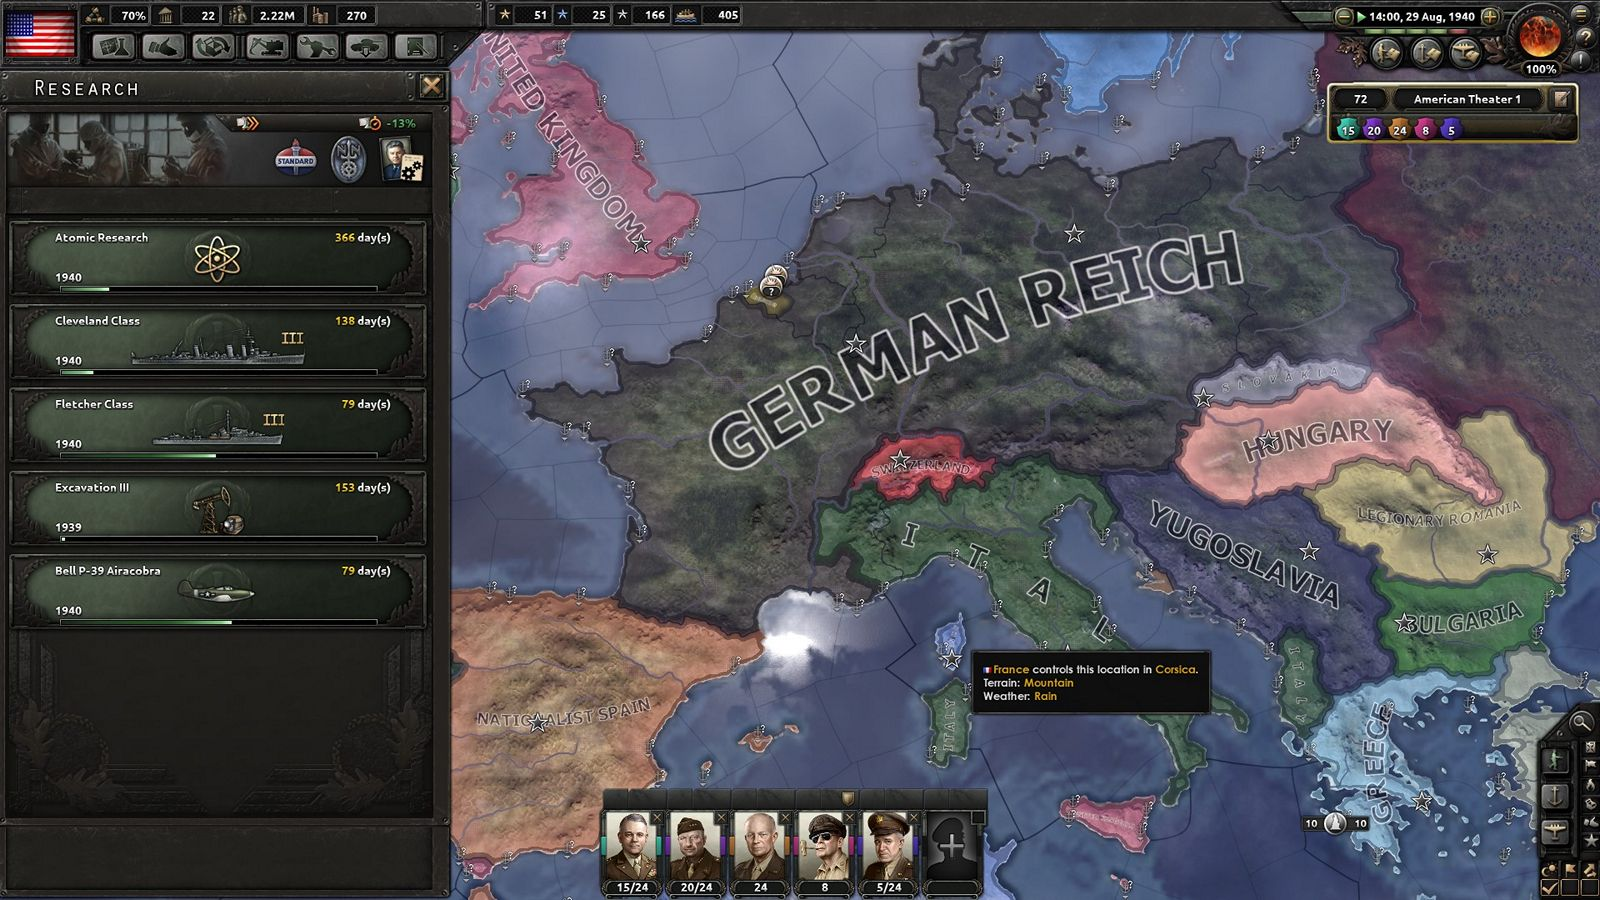 Hearts of iron 1 patches